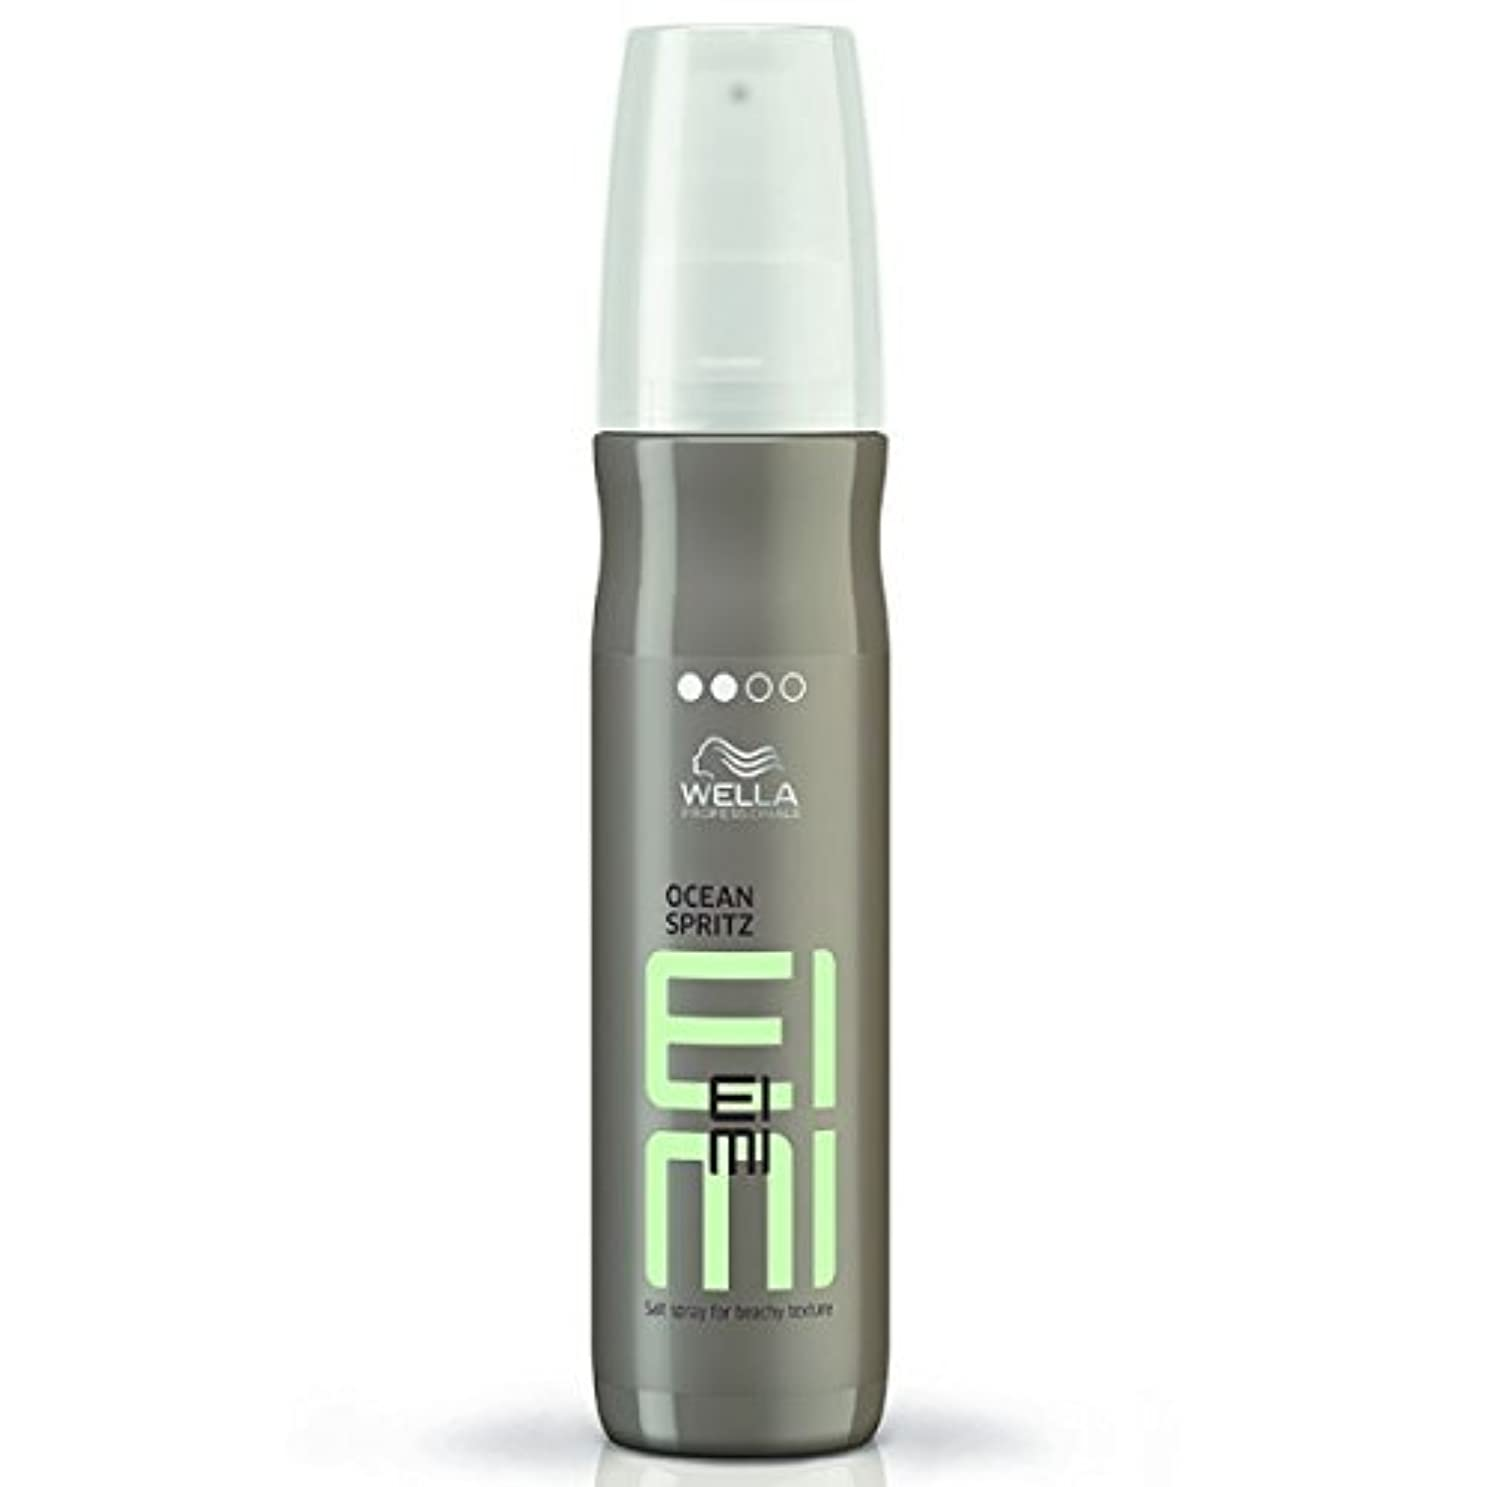 病んでいるブル成長Wella EIMI Ocean Spritz - Salt Spray For Beachy Hair Texture 150 ml [並行輸入品]